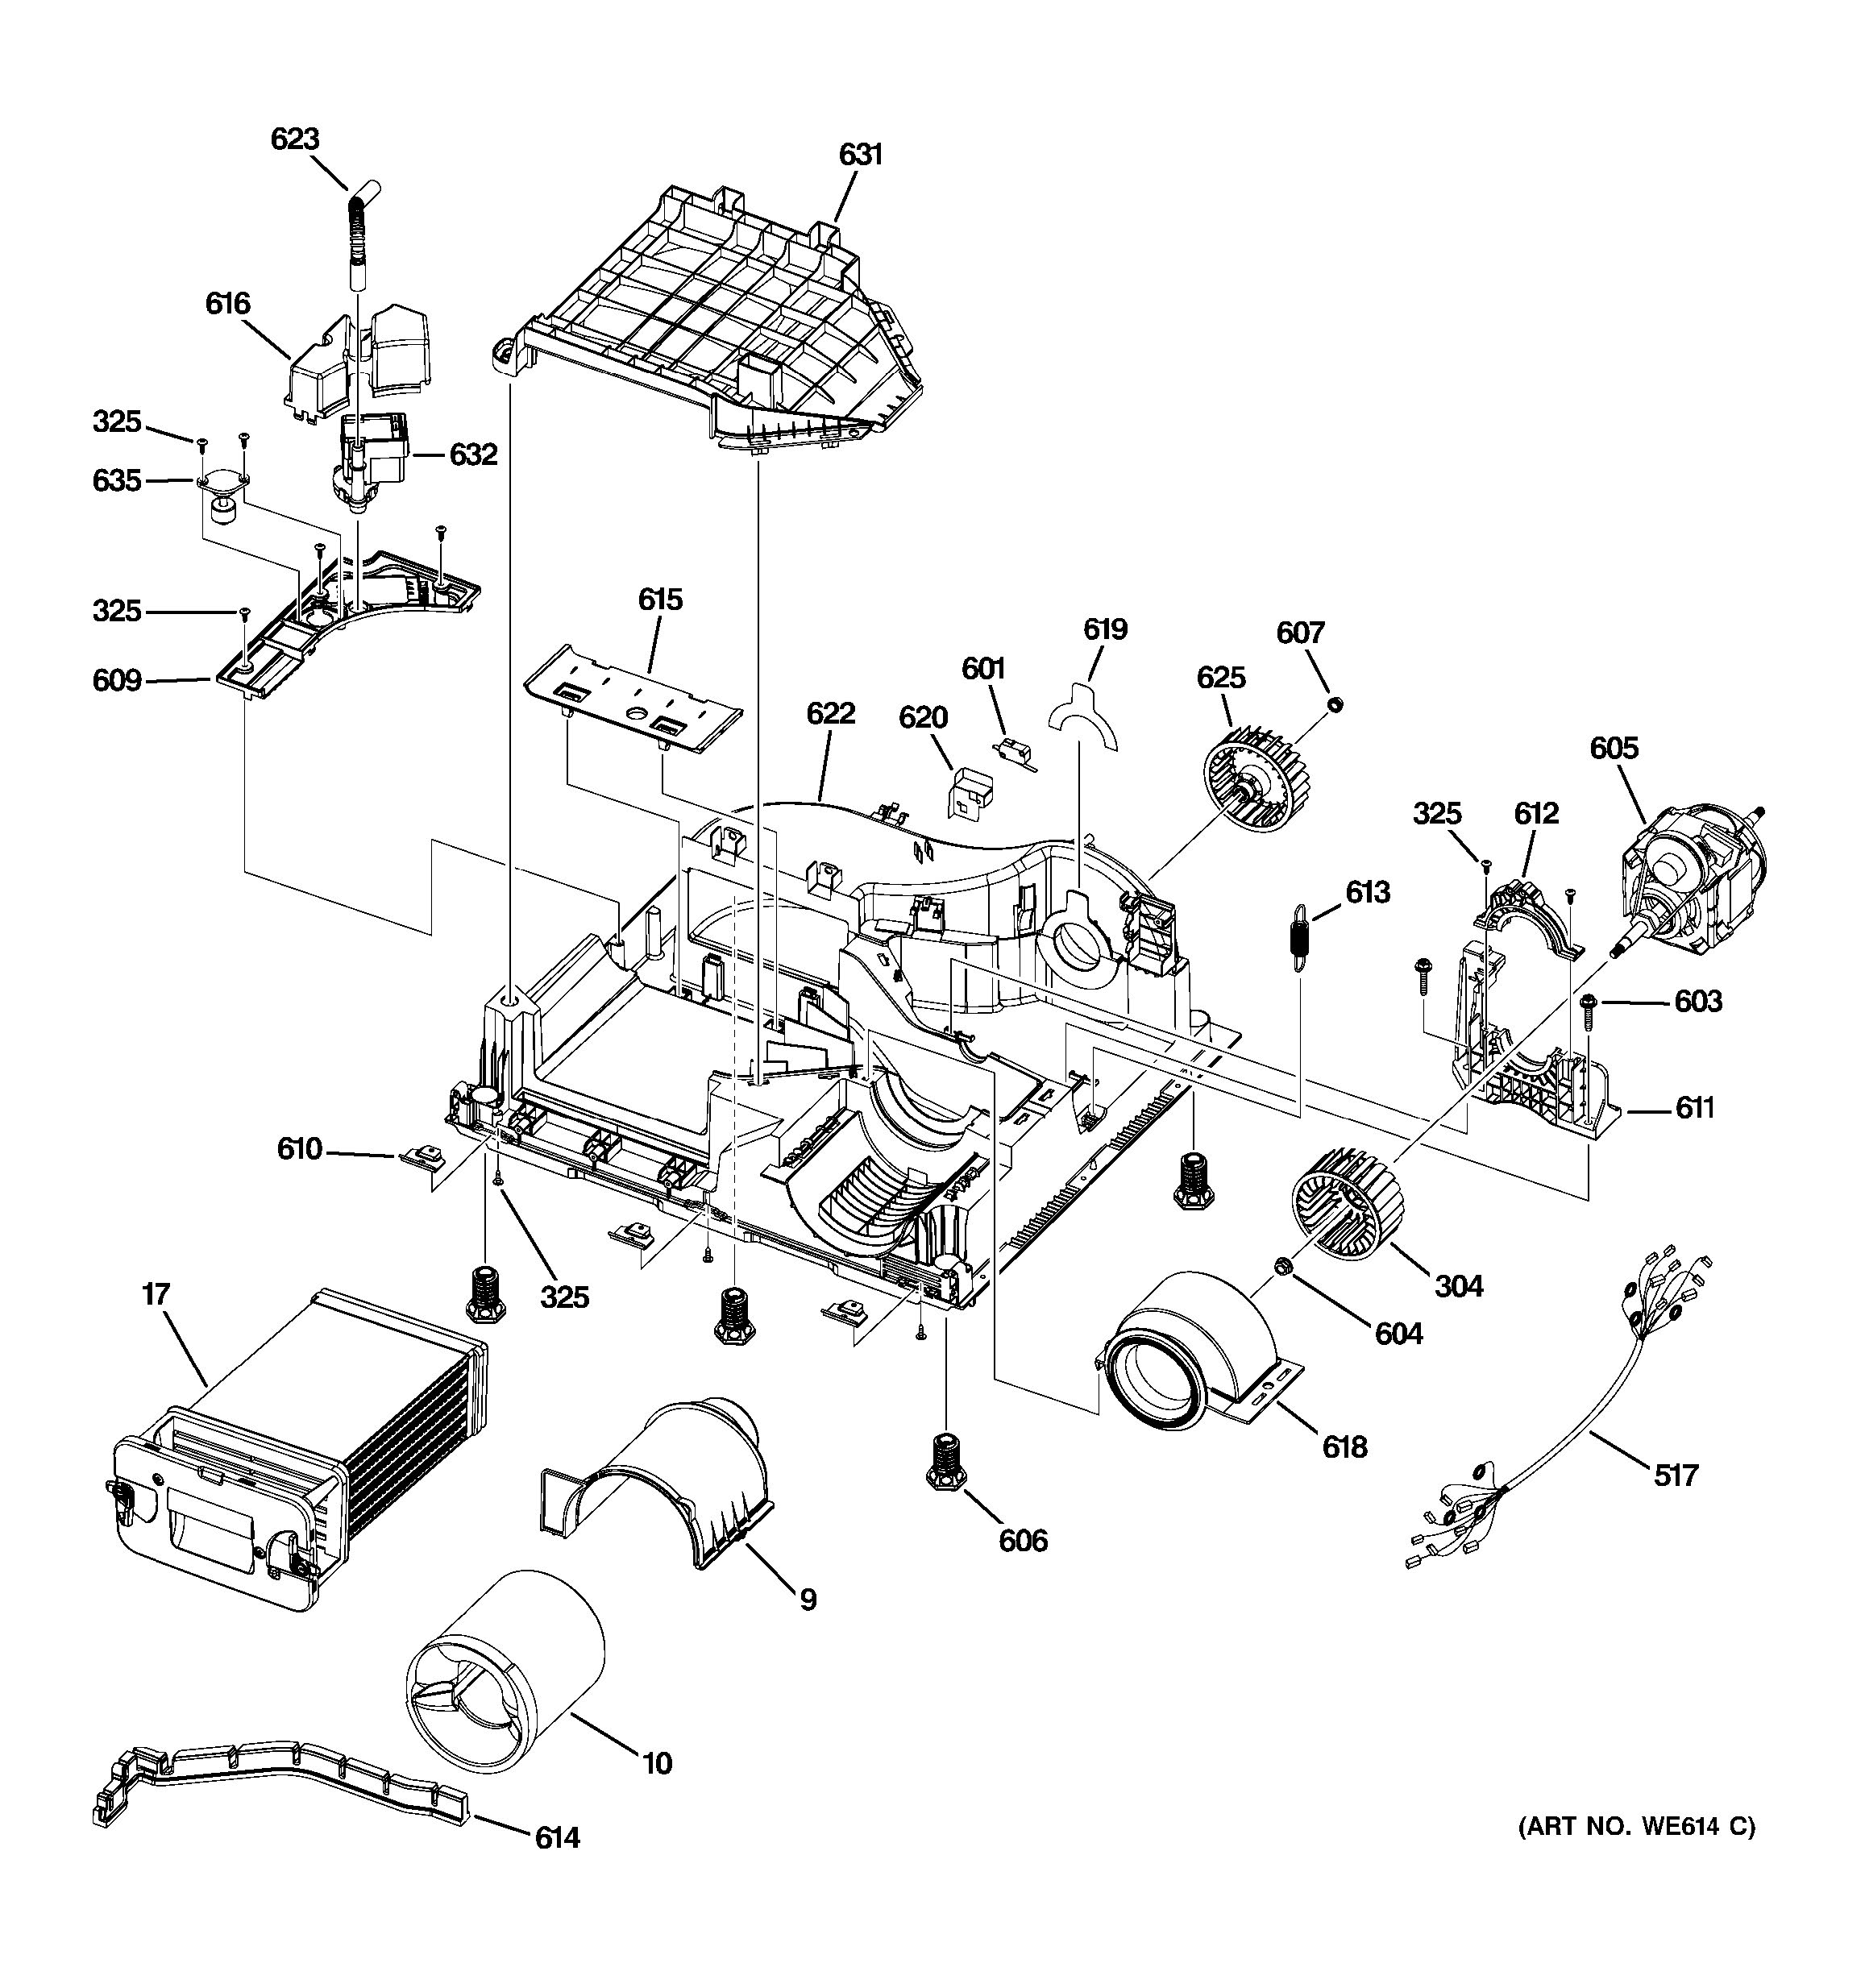 Assembly View For Motor Amp Blower Assembly